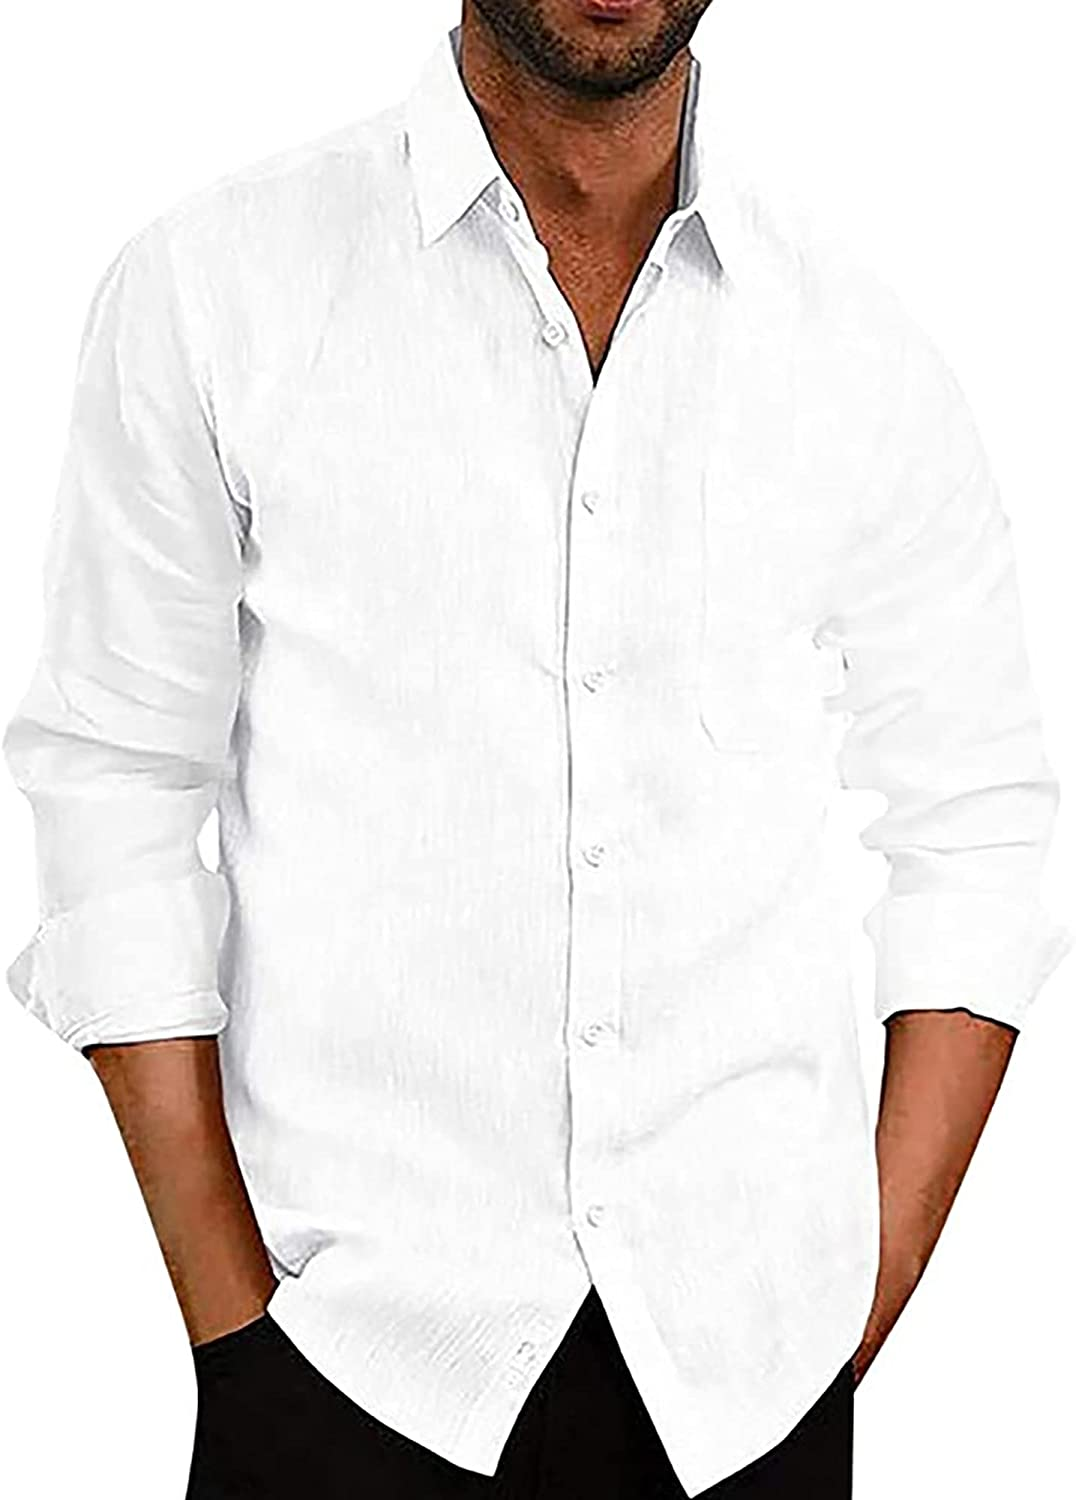 YAOHUOLE Men's Casual Button Down Shirt Long Sleeve Cotton Beach Shirt with Chest Pocket